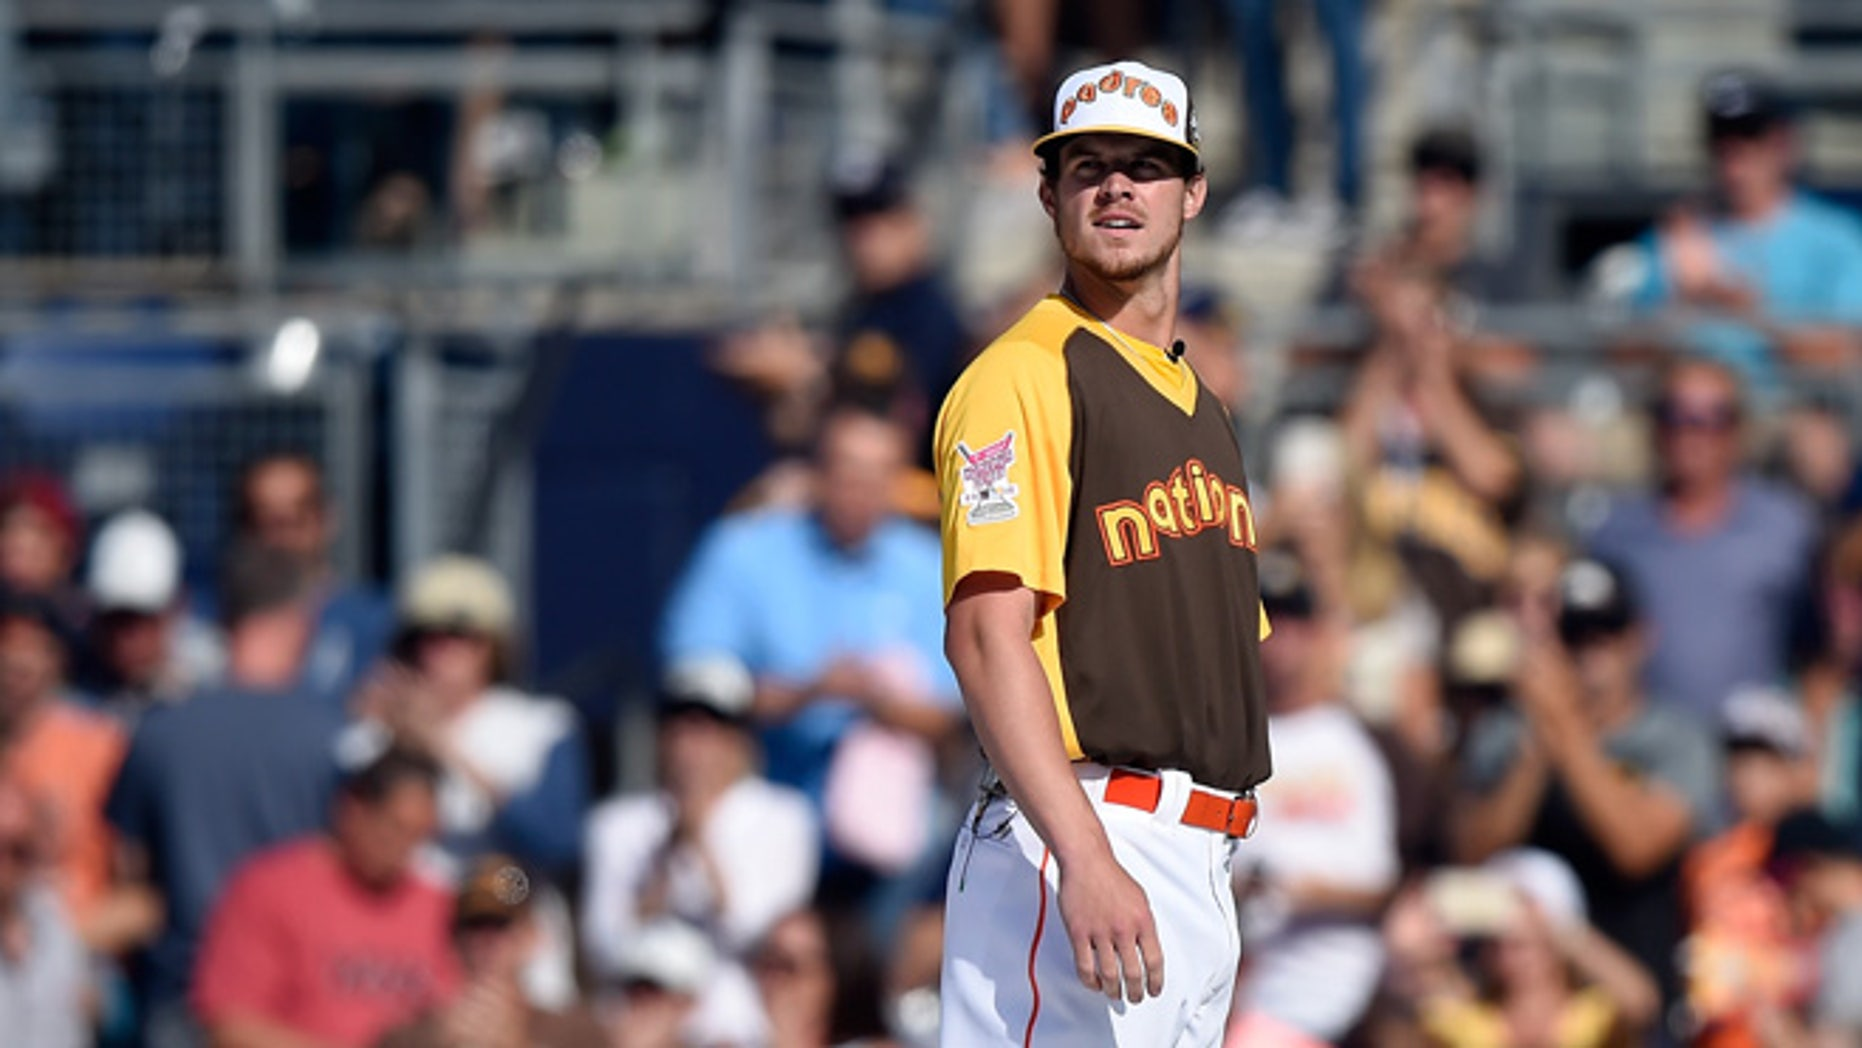 SAN DIEGO, CA - JULY 11:  Wil Myers #4 of the San Diego Padres competes in the T-Mobile Home Run Derby at PETCO Park on July 11, 2016 in San Diego, California.  (Photo by Denis Poroy/Getty Images)